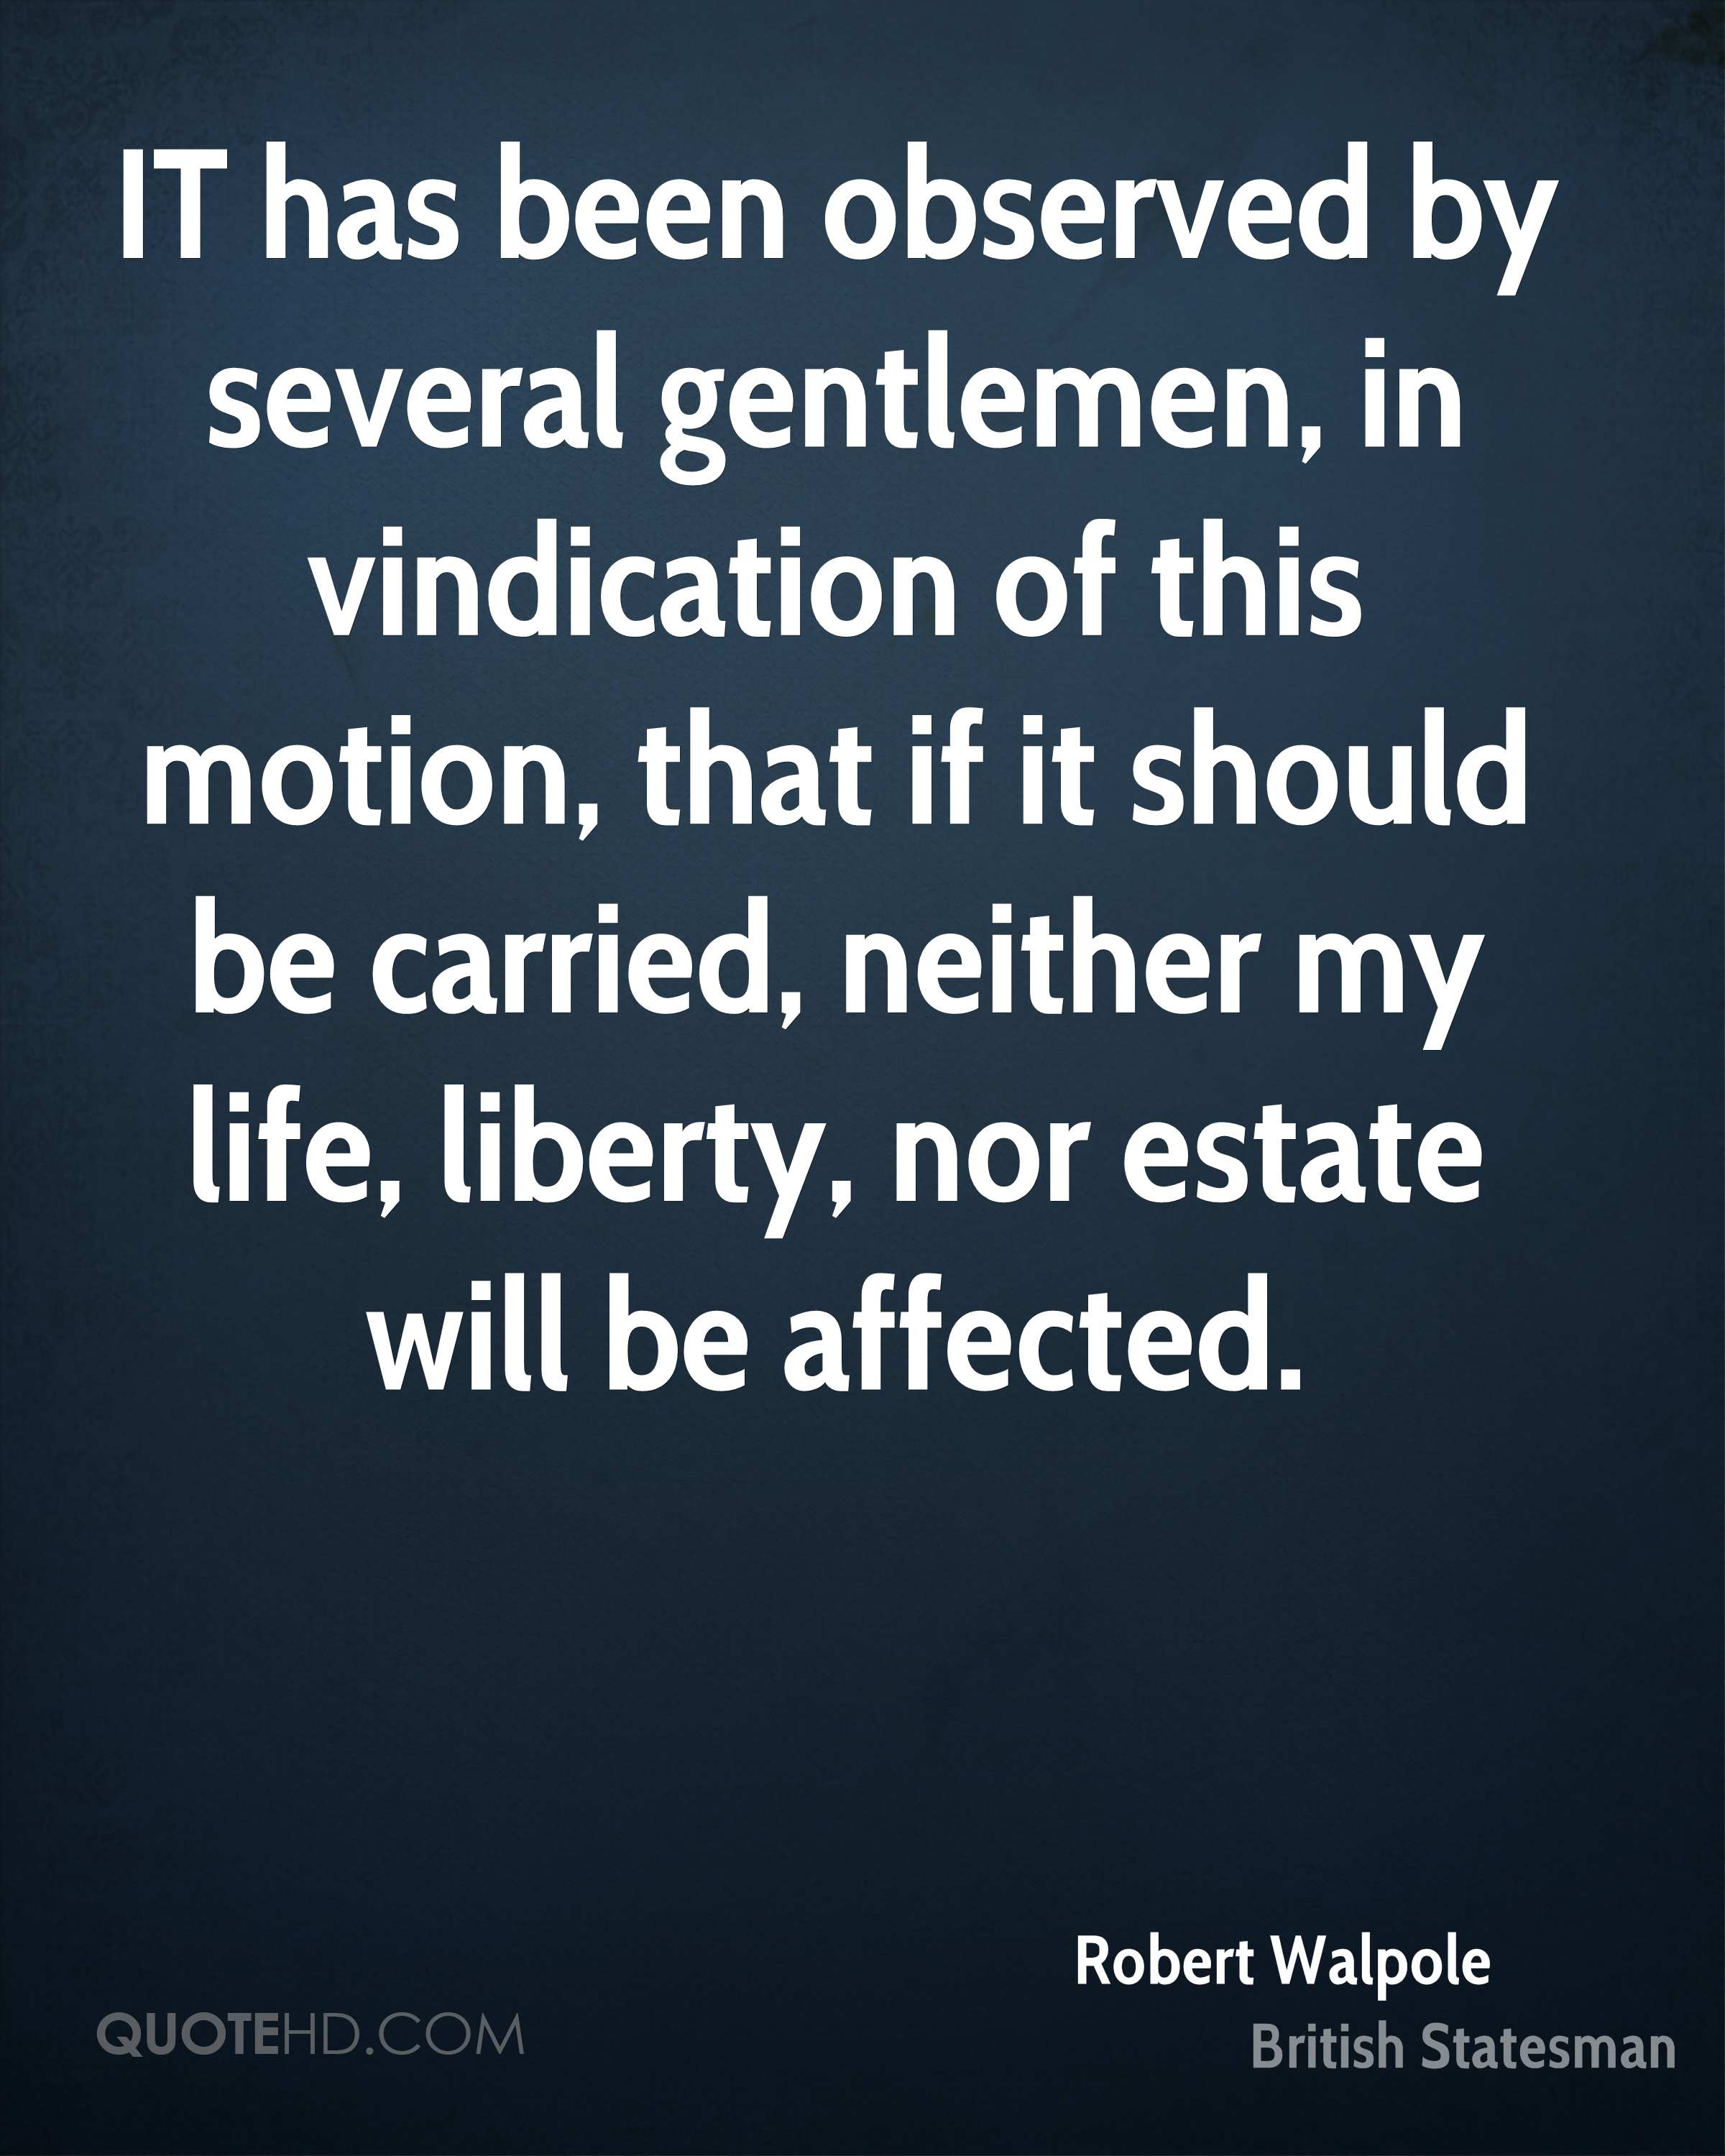 IT has been observed by several gentlemen, in vindication of this motion, that if it should be carried, neither my life, liberty, nor estate will be affected.